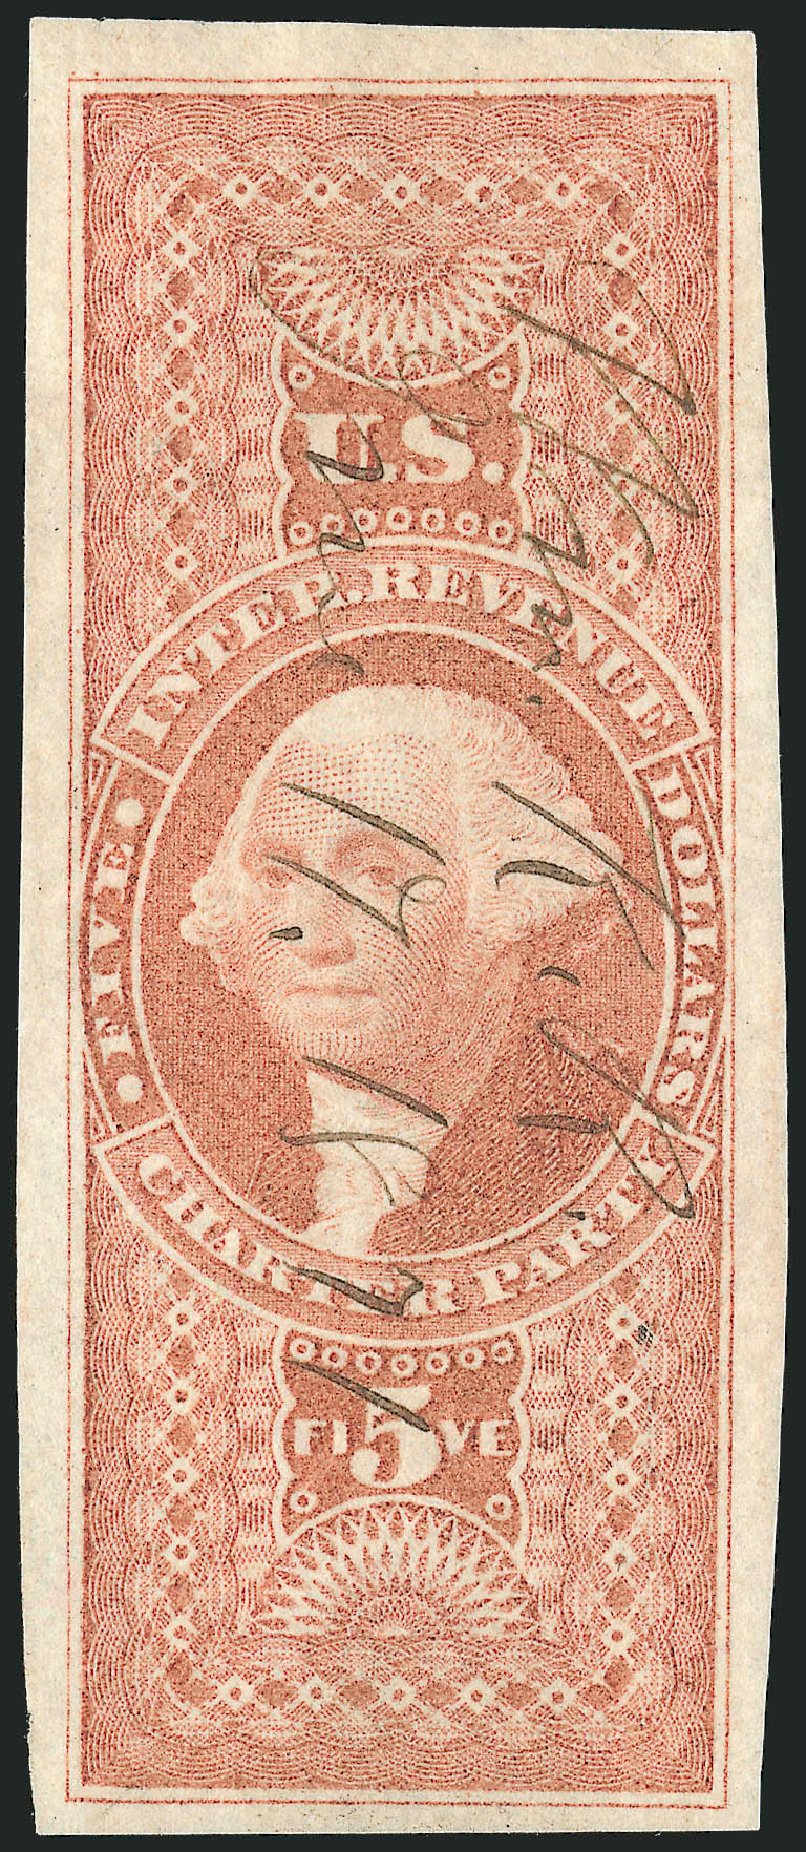 US Stamp Values Scott Catalog #R88 - 1862 US$5.00 Revenue Charter Party. Robert Siegel Auction Galleries, Dec 2014, Sale 1089, Lot 253